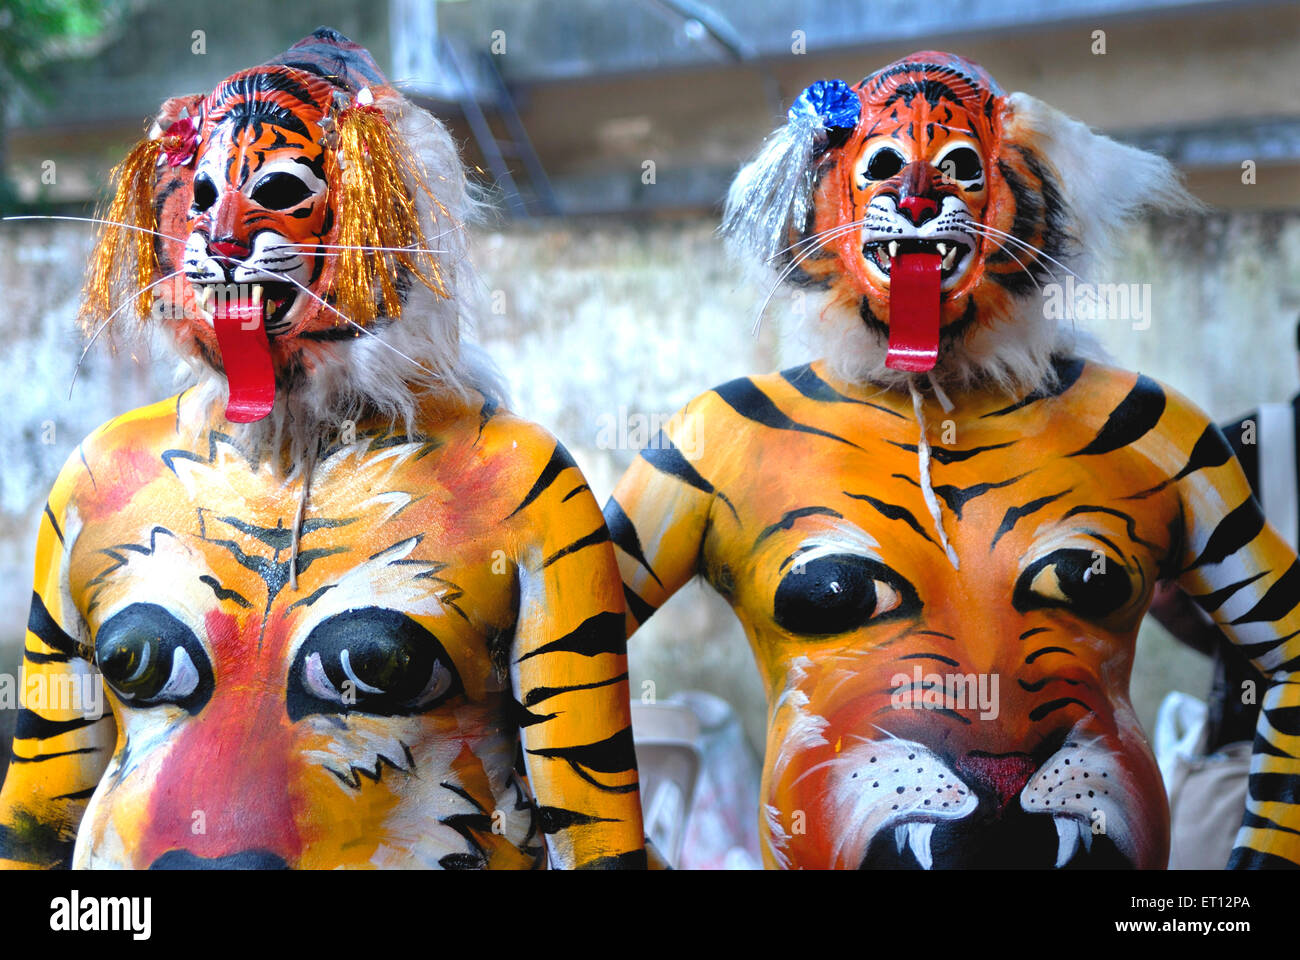 Pulikali or tiger play performers painted bodies like tigers during onam celebration ; Trivandrum ; Kerala ; India - Stock Image